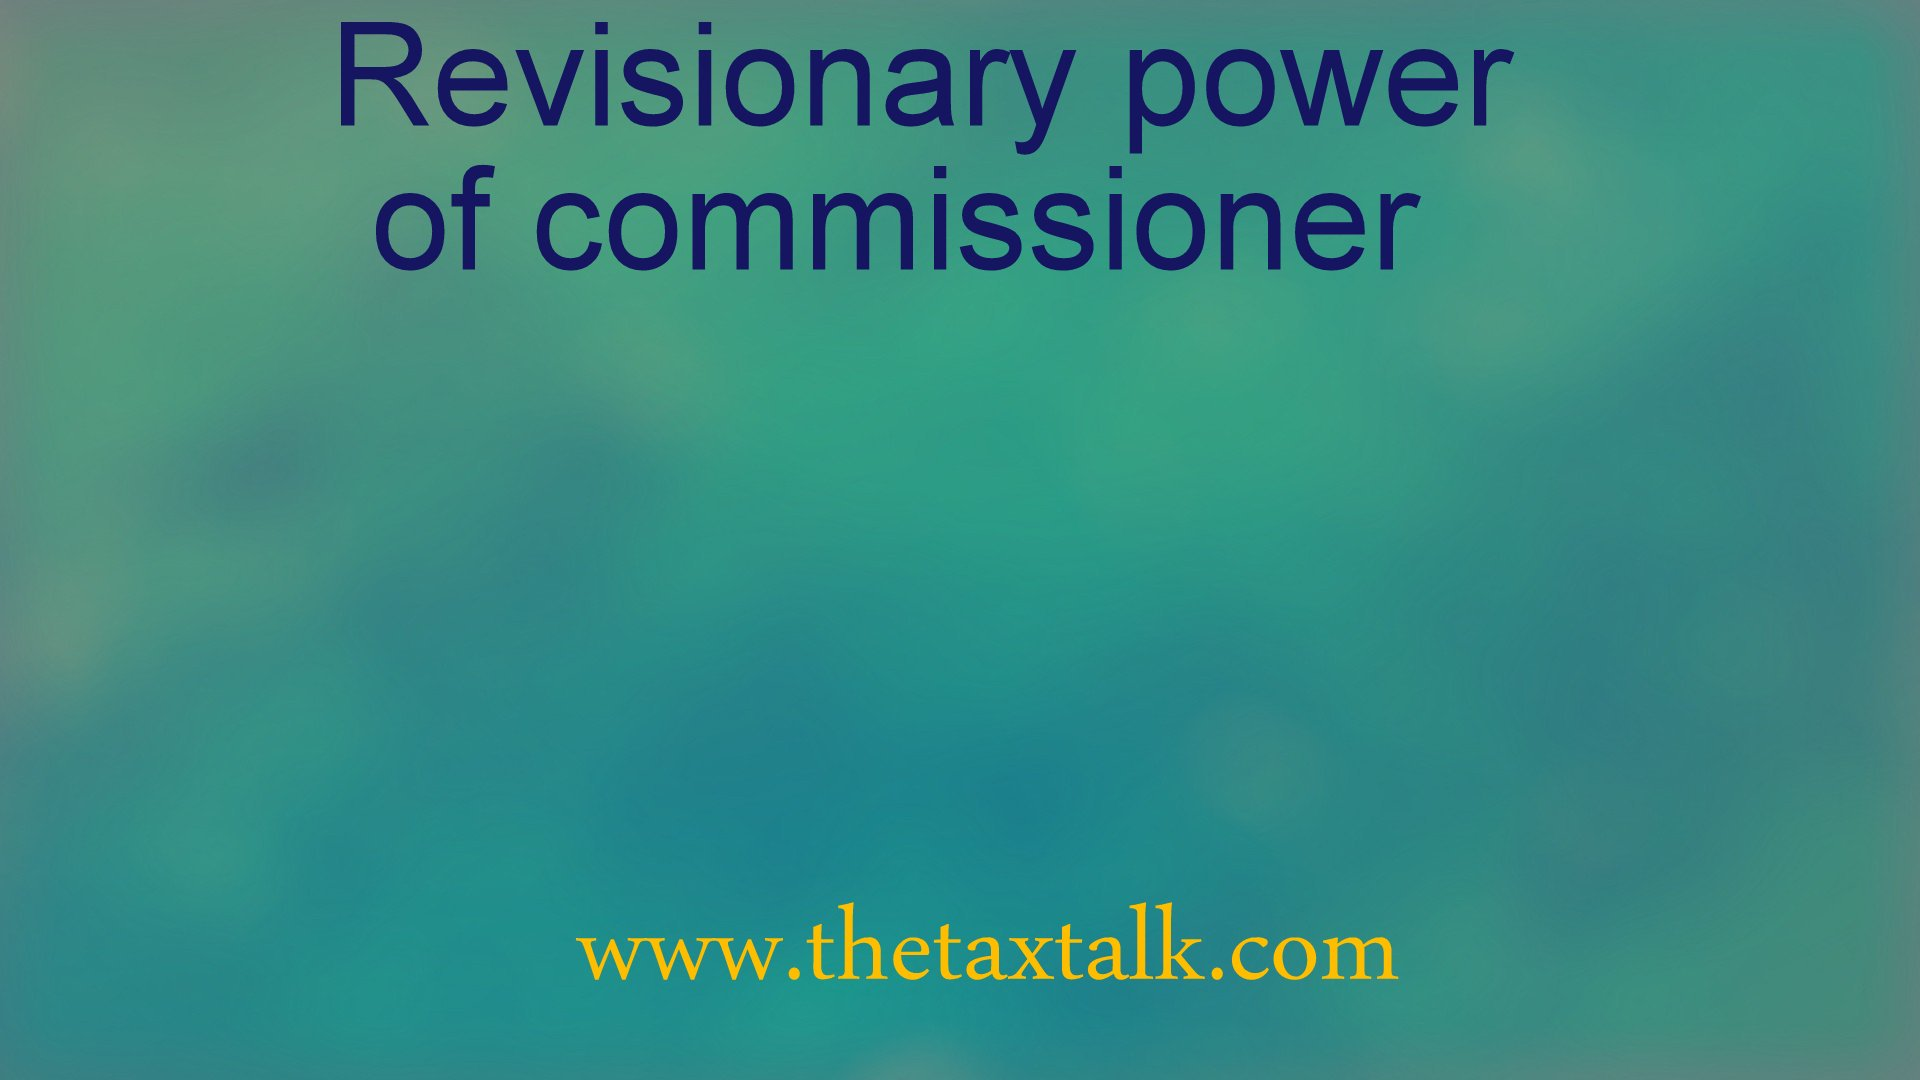 Revisionary power of commissioner